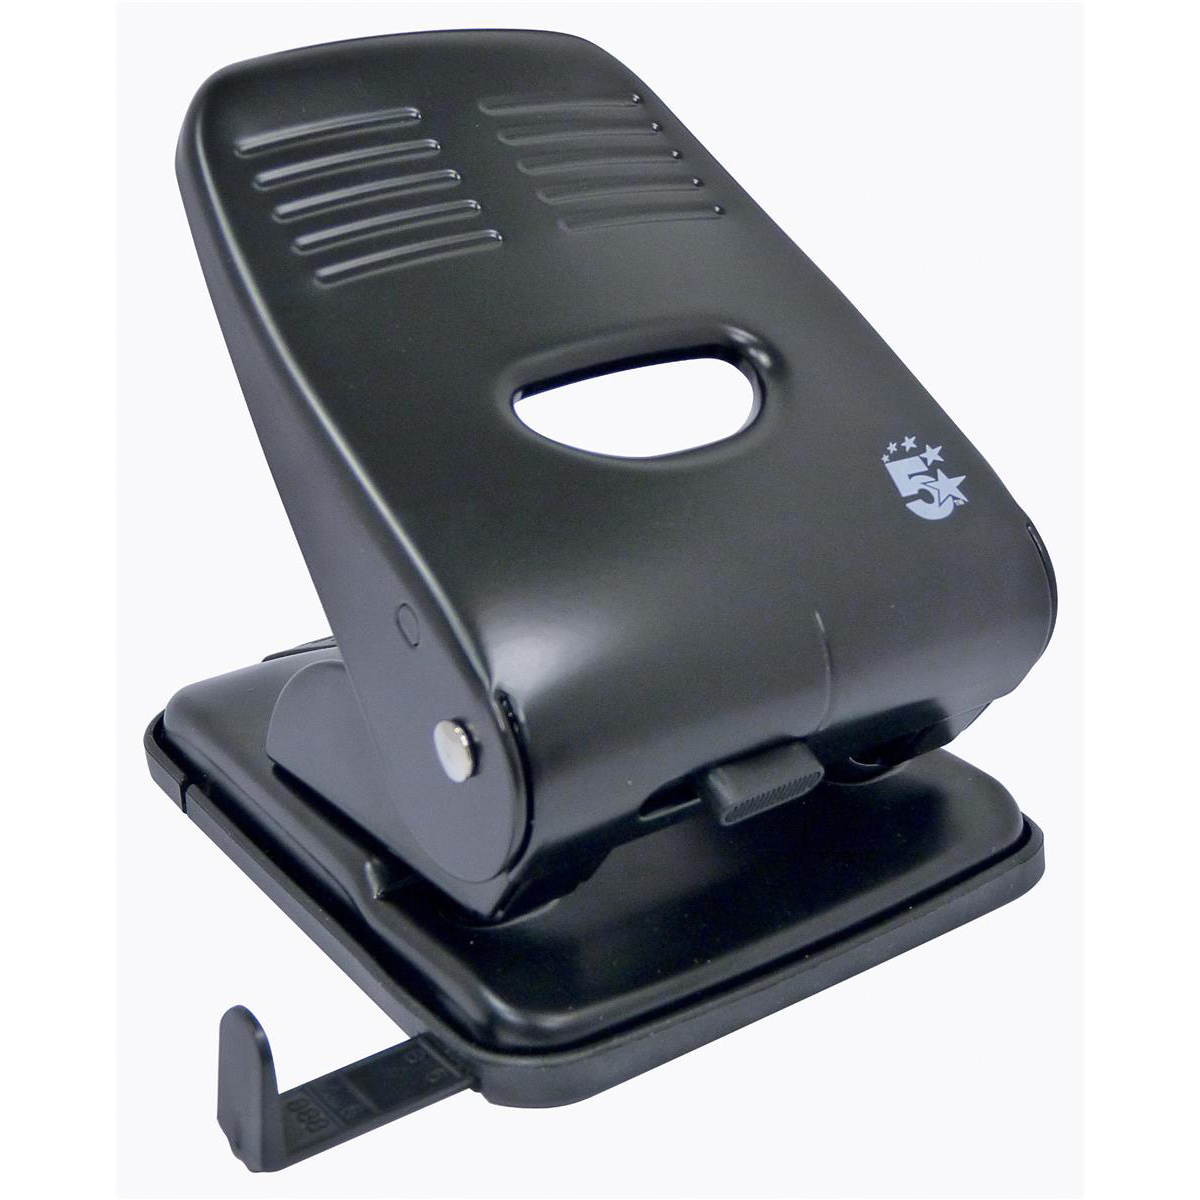 Hole Punches 5 Star Office Punch 2-Hole Metal with Plastic Base Capacity 40x 80gsm Black